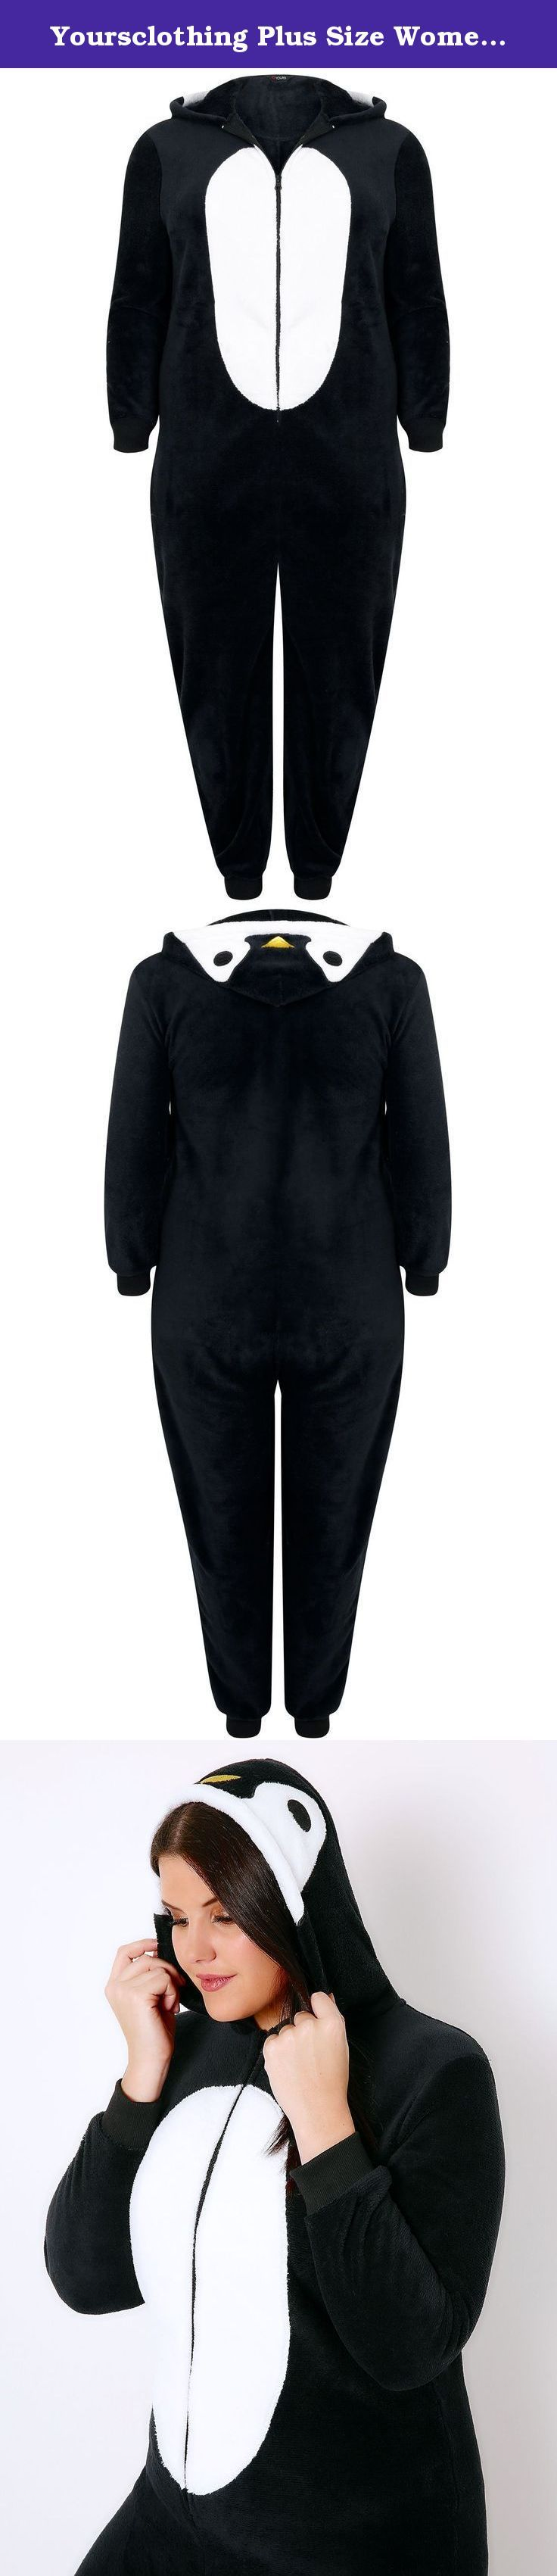 Yoursclothing Plus Size Womens Novelty Penguin Onesie With Hood & Zip-up Front Size 16-18 Black. Plus size black novelty penguin onesie with a hood, zip-up fastening to the front, and ribbed cuffs to the sleeves and legs. Made from a super soft cosy fabric this onesie is perfect for snuggling up on the sofa this winter.